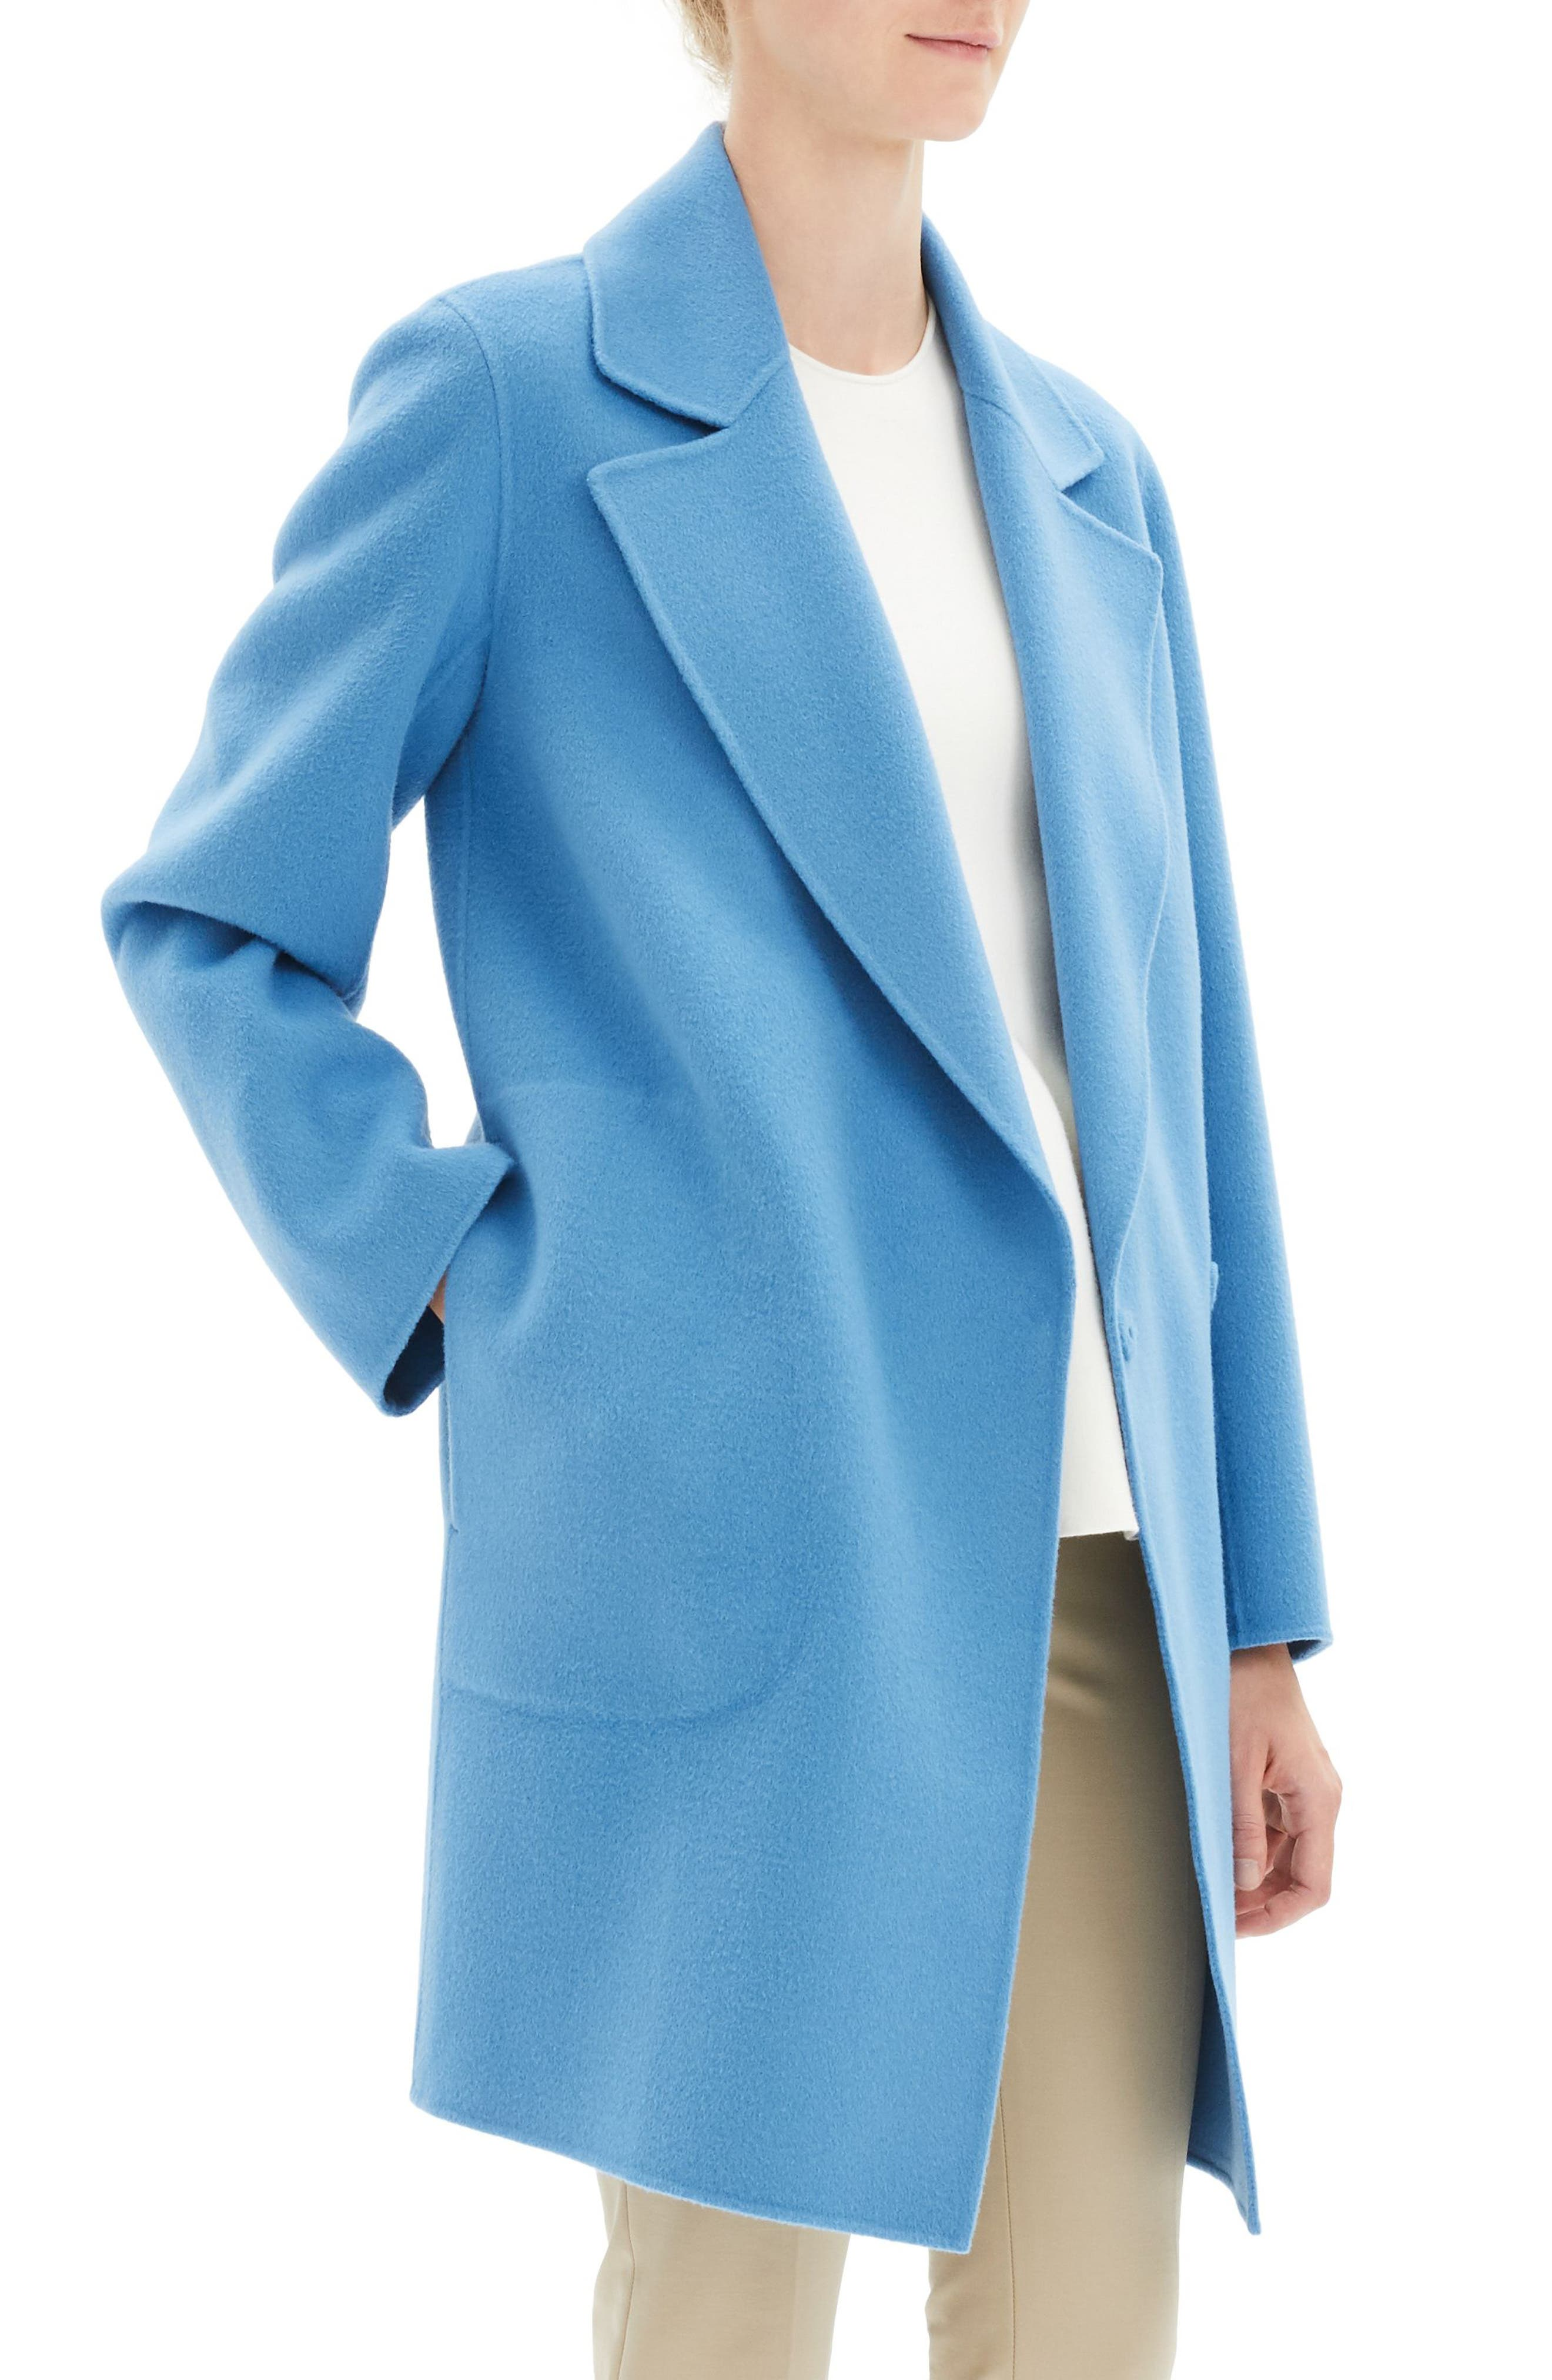 THEORY, Wool & Cashmere Boy Coat, Alternate thumbnail 4, color, 488